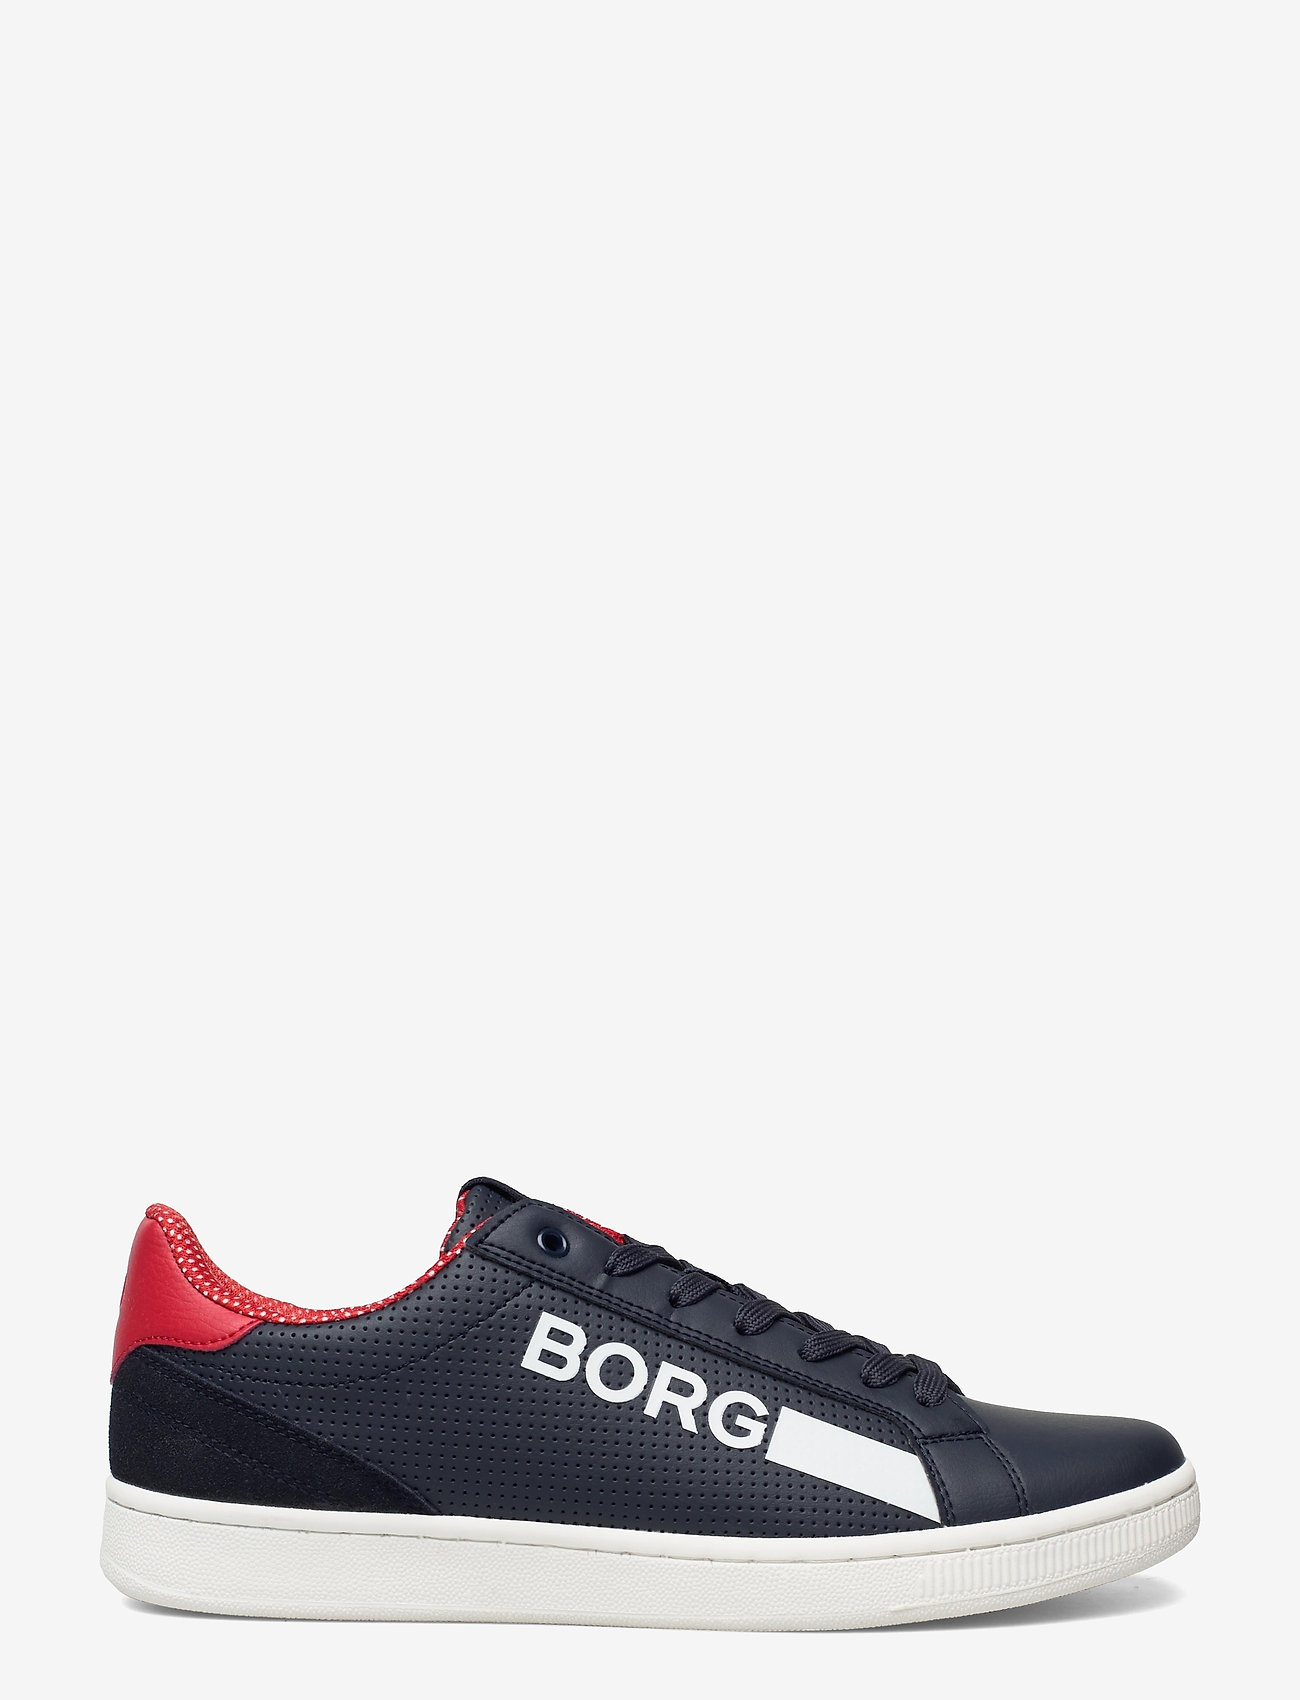 Björn Borg - T330 Low Ctr Prf M - laag sneakers - navy/red - 1